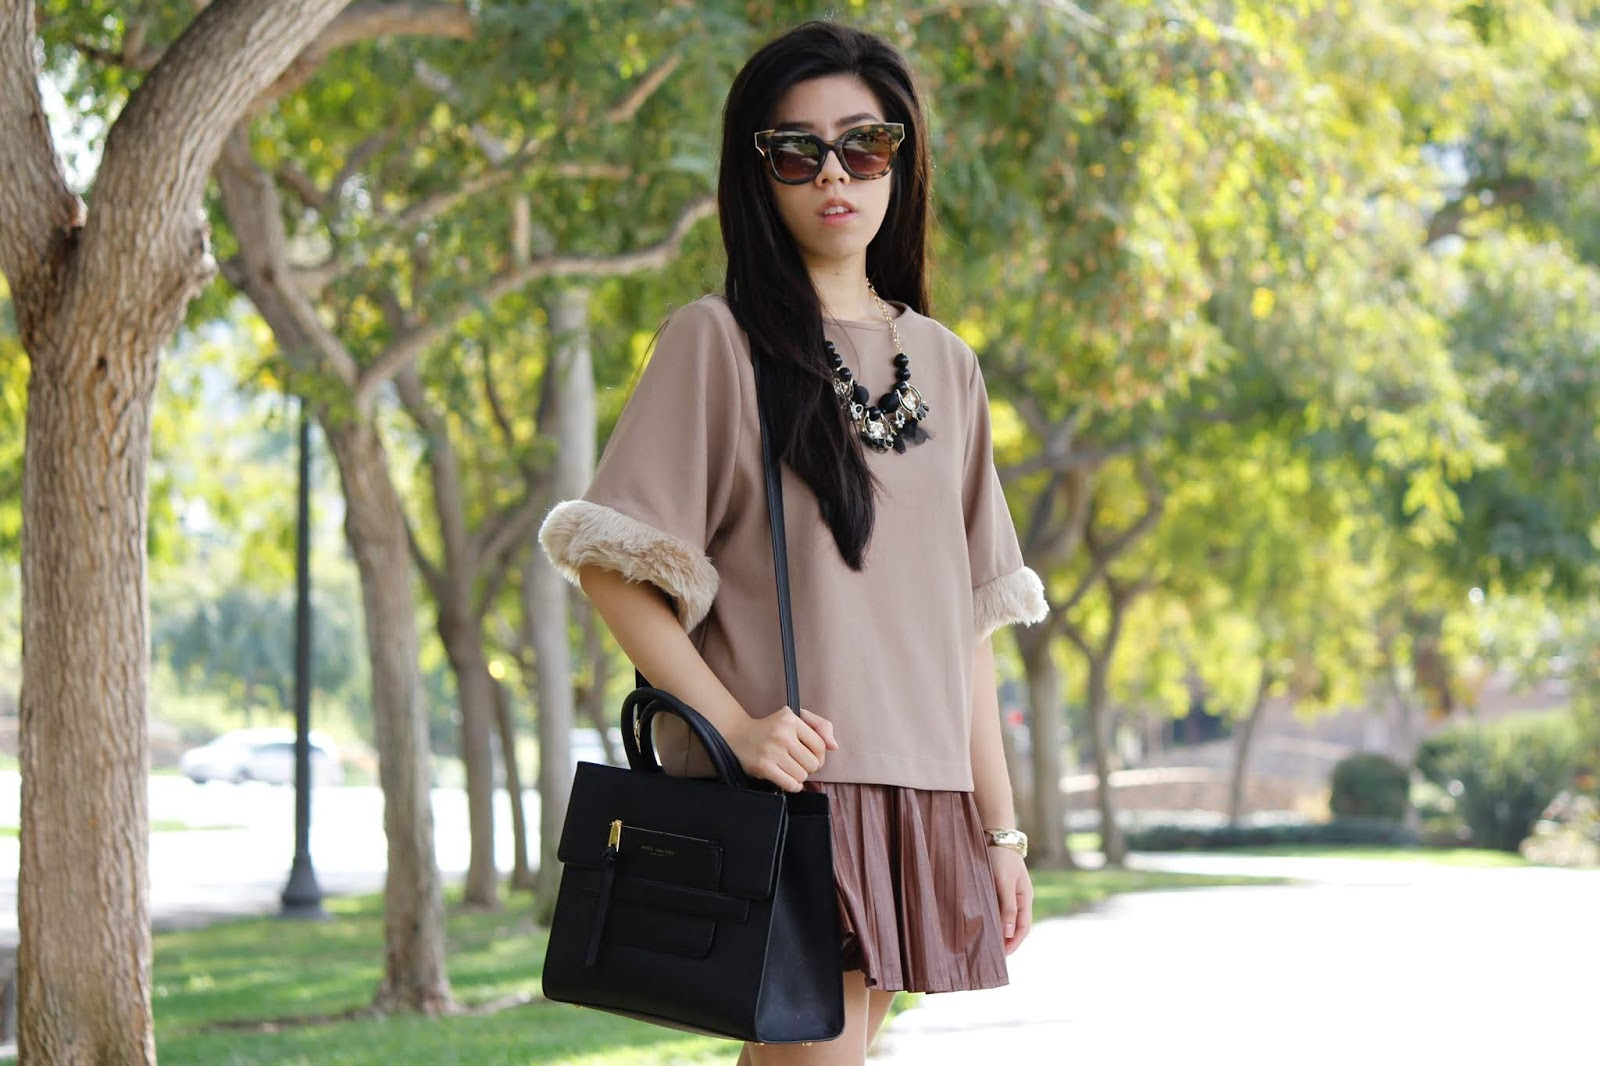 Adrienne Nguyen_How to Look Like Blair Waldorf on a Budget_Audrey Hepburn Inspiration